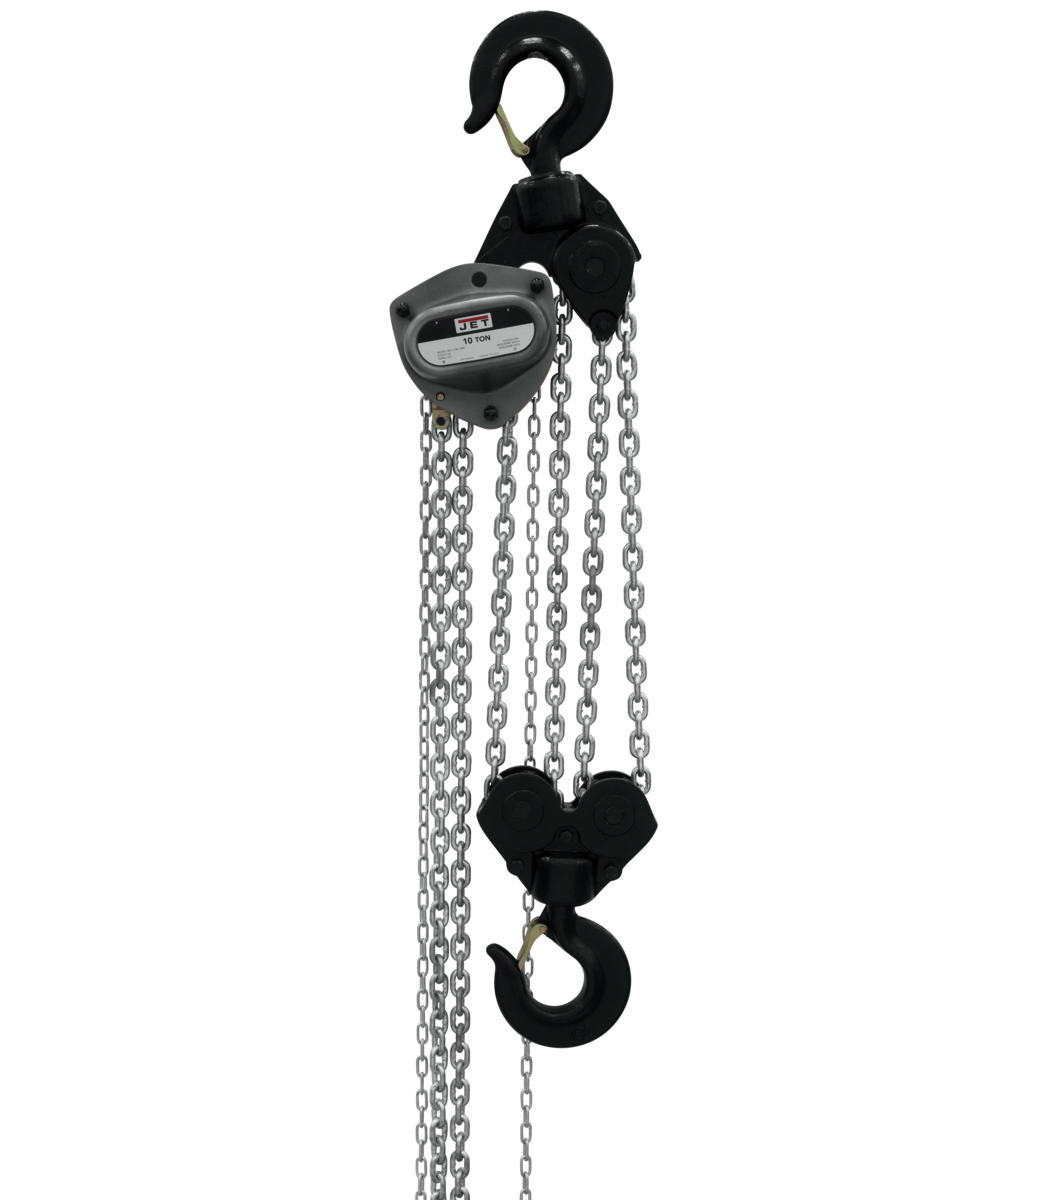 L-100-1000WO-20, 10-Ton Hand Chain Hoist With 20' Lift & Overload Protection